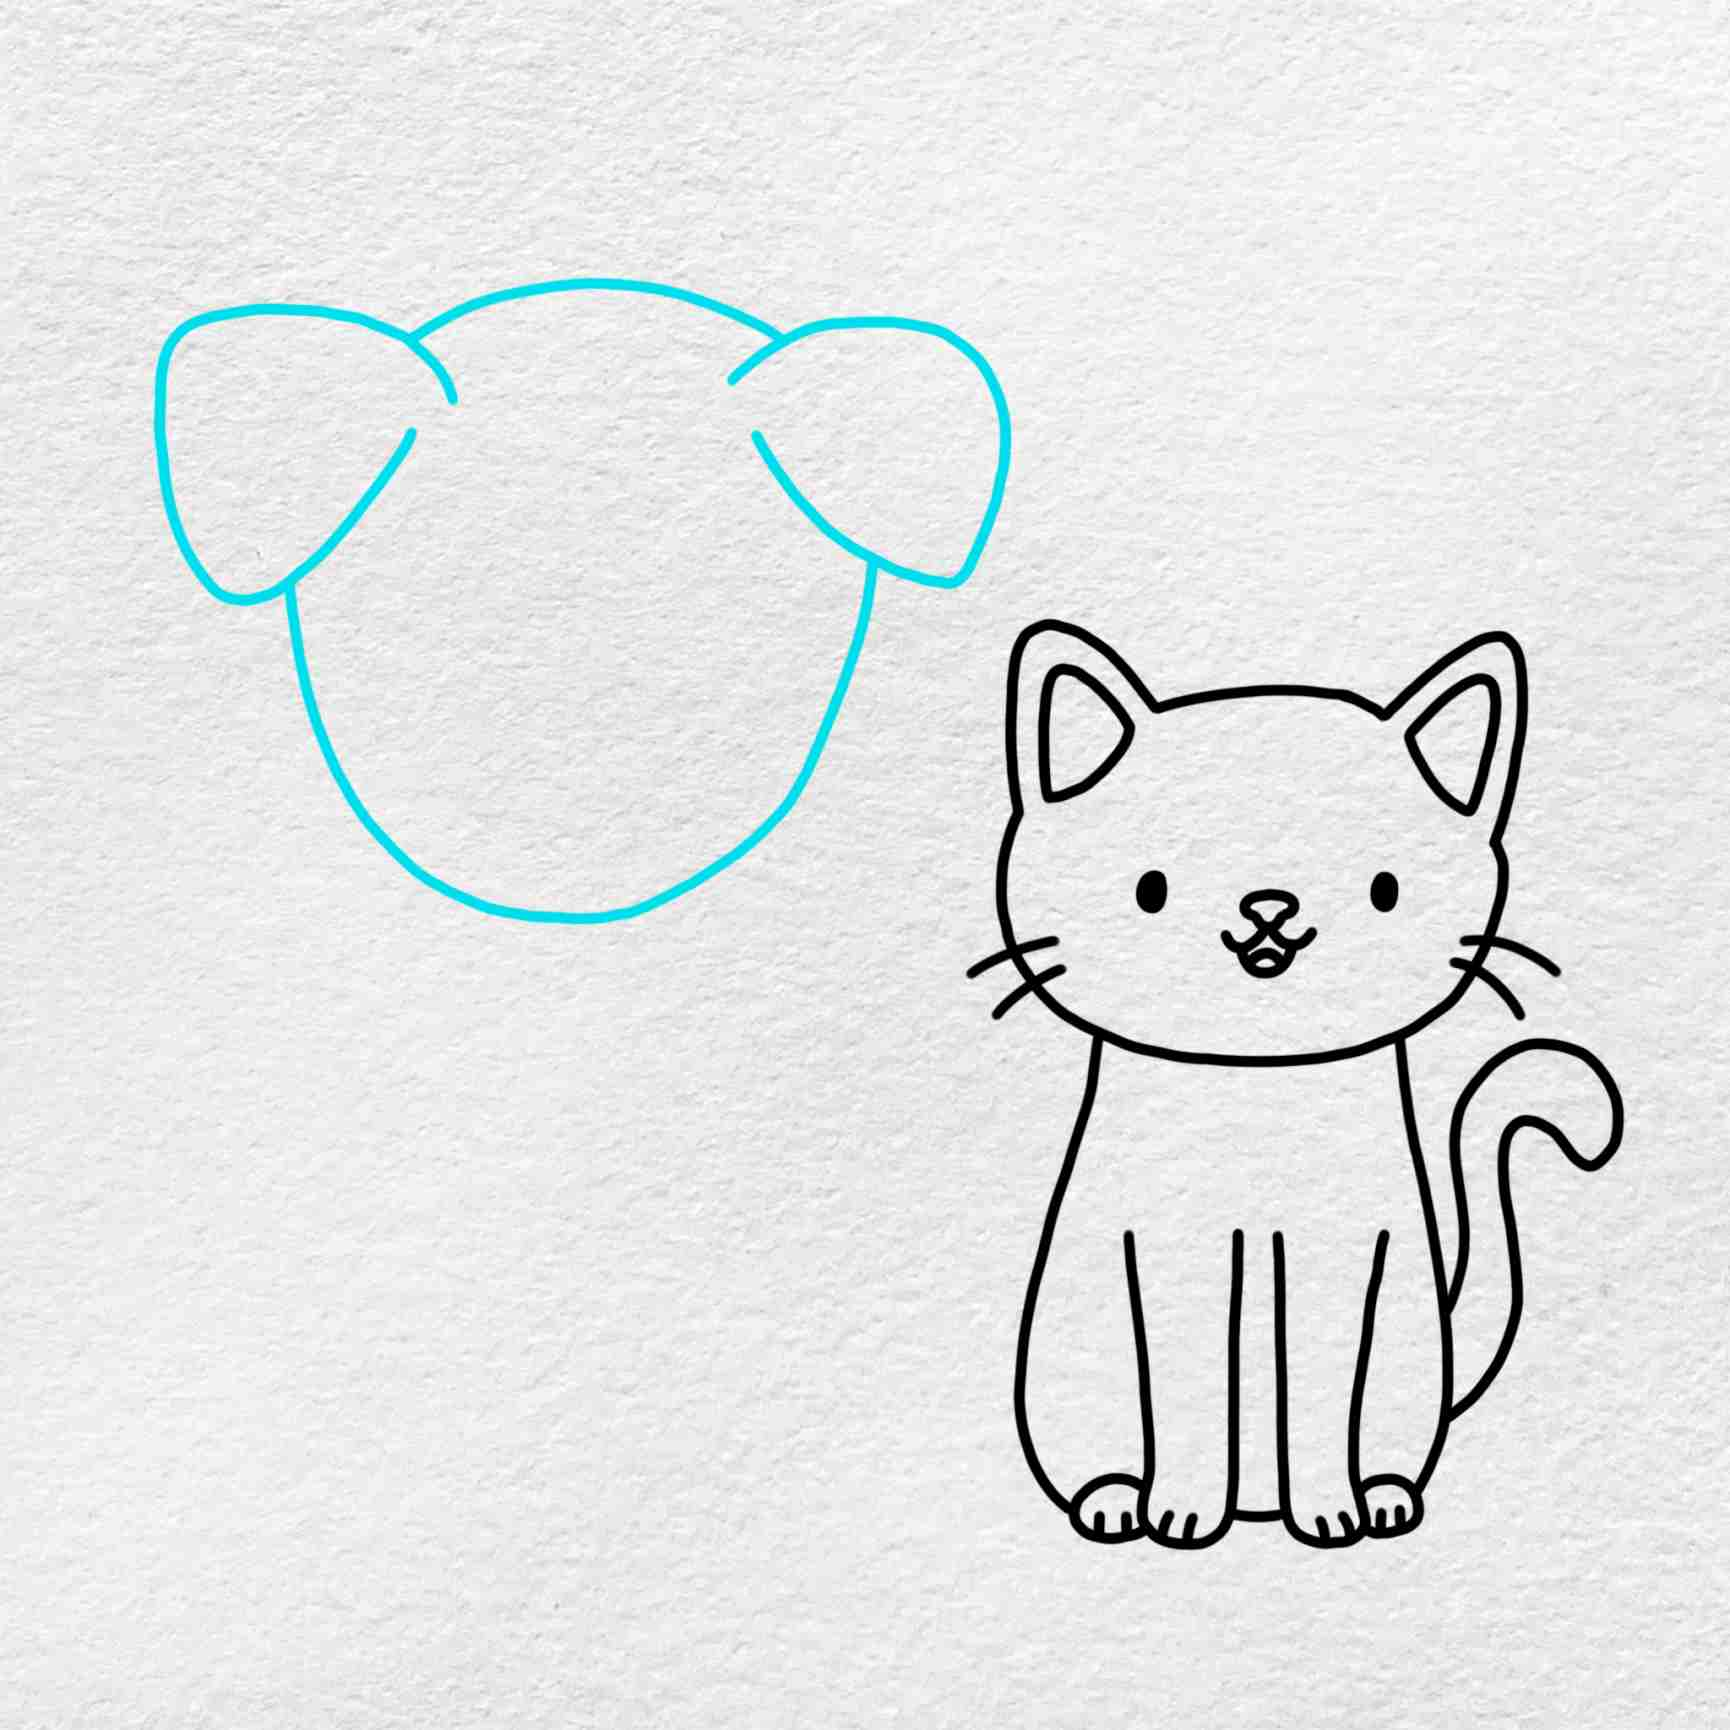 Cat And Dog Drawing: Step 5